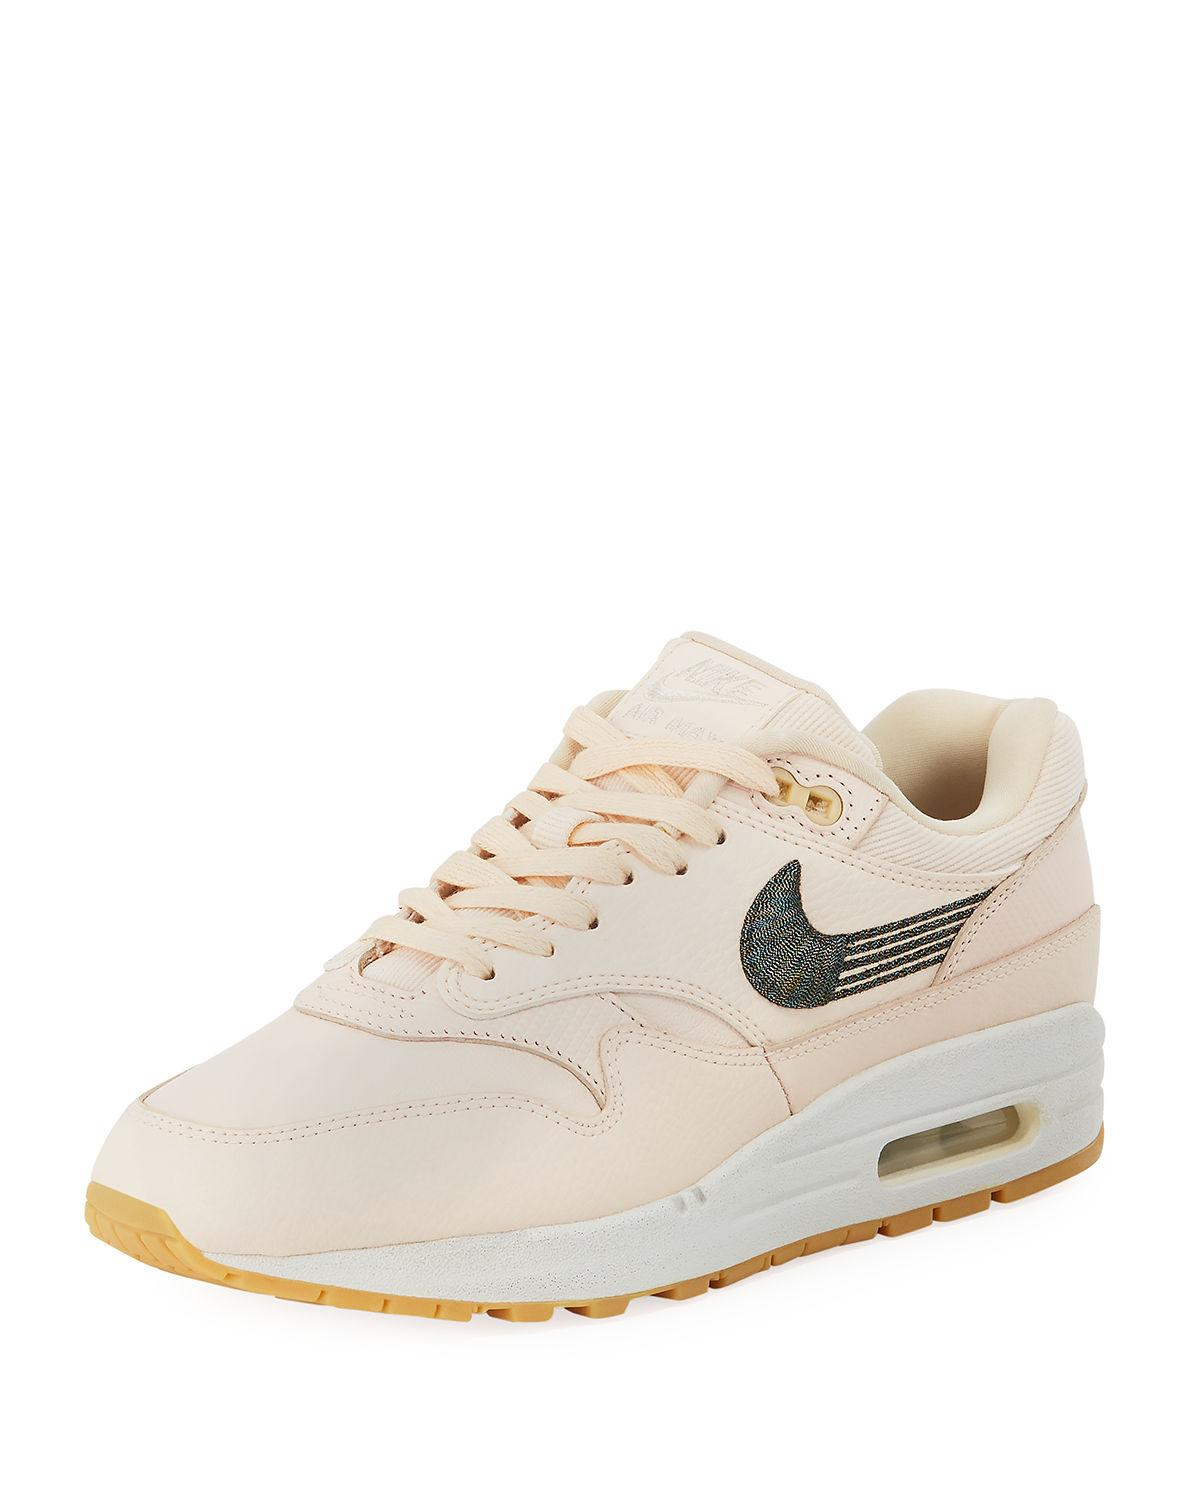 cheap for discount 6d12a bd8f0 Nike Air Max 1 Premium Leather Sneakers In Orange